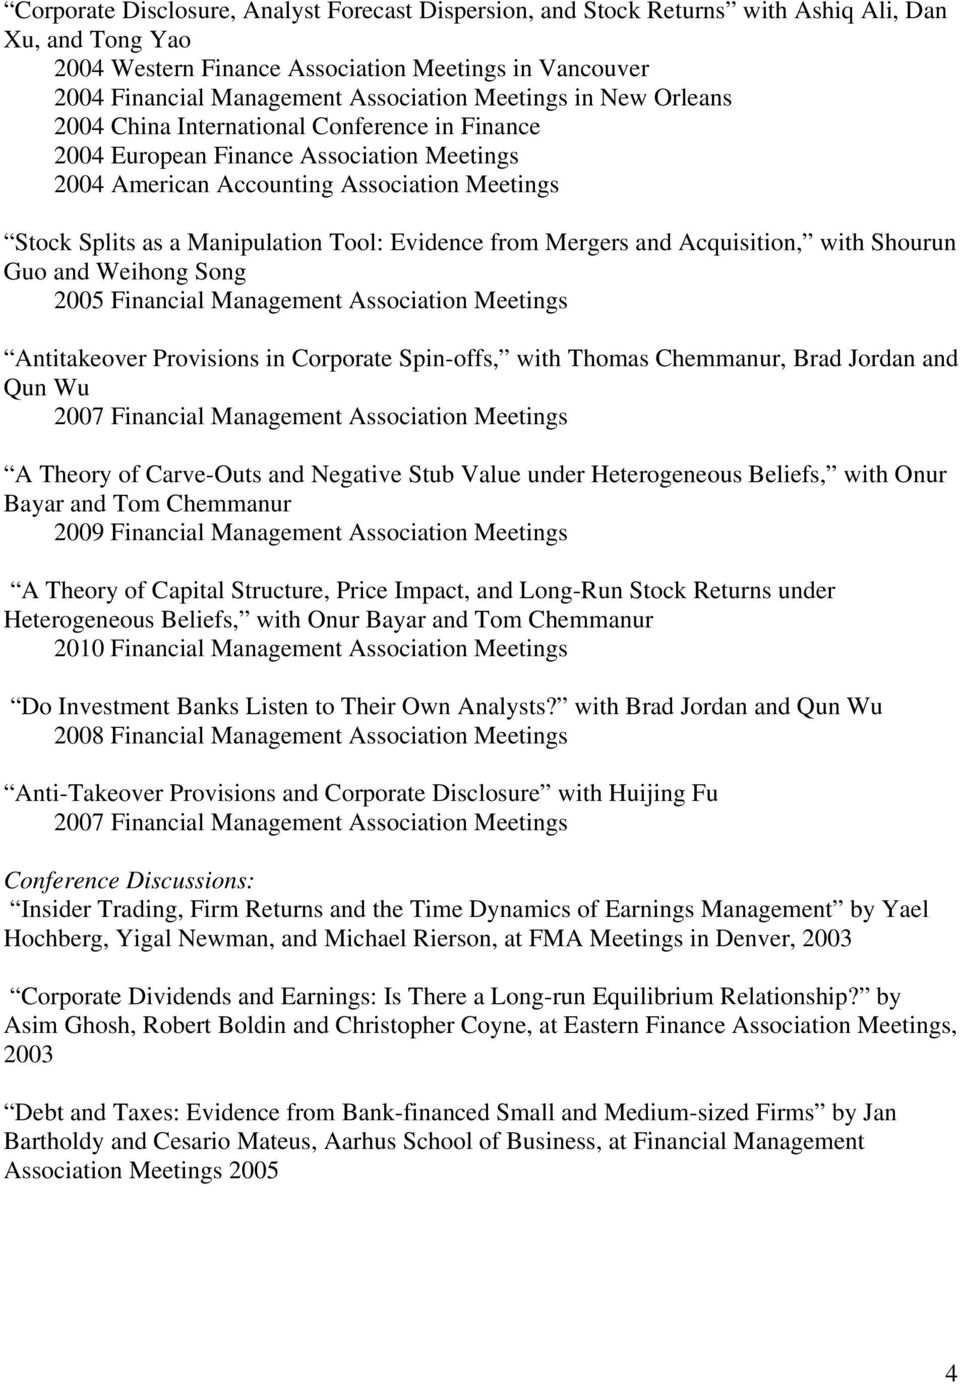 Evidence from Mergers and Acquisition, with Shourun Guo and Weihong Song 2005 Financial Management Association Meetings Antitakeover Provisions in Corporate Spin-offs, with Thomas Chemmanur, Brad